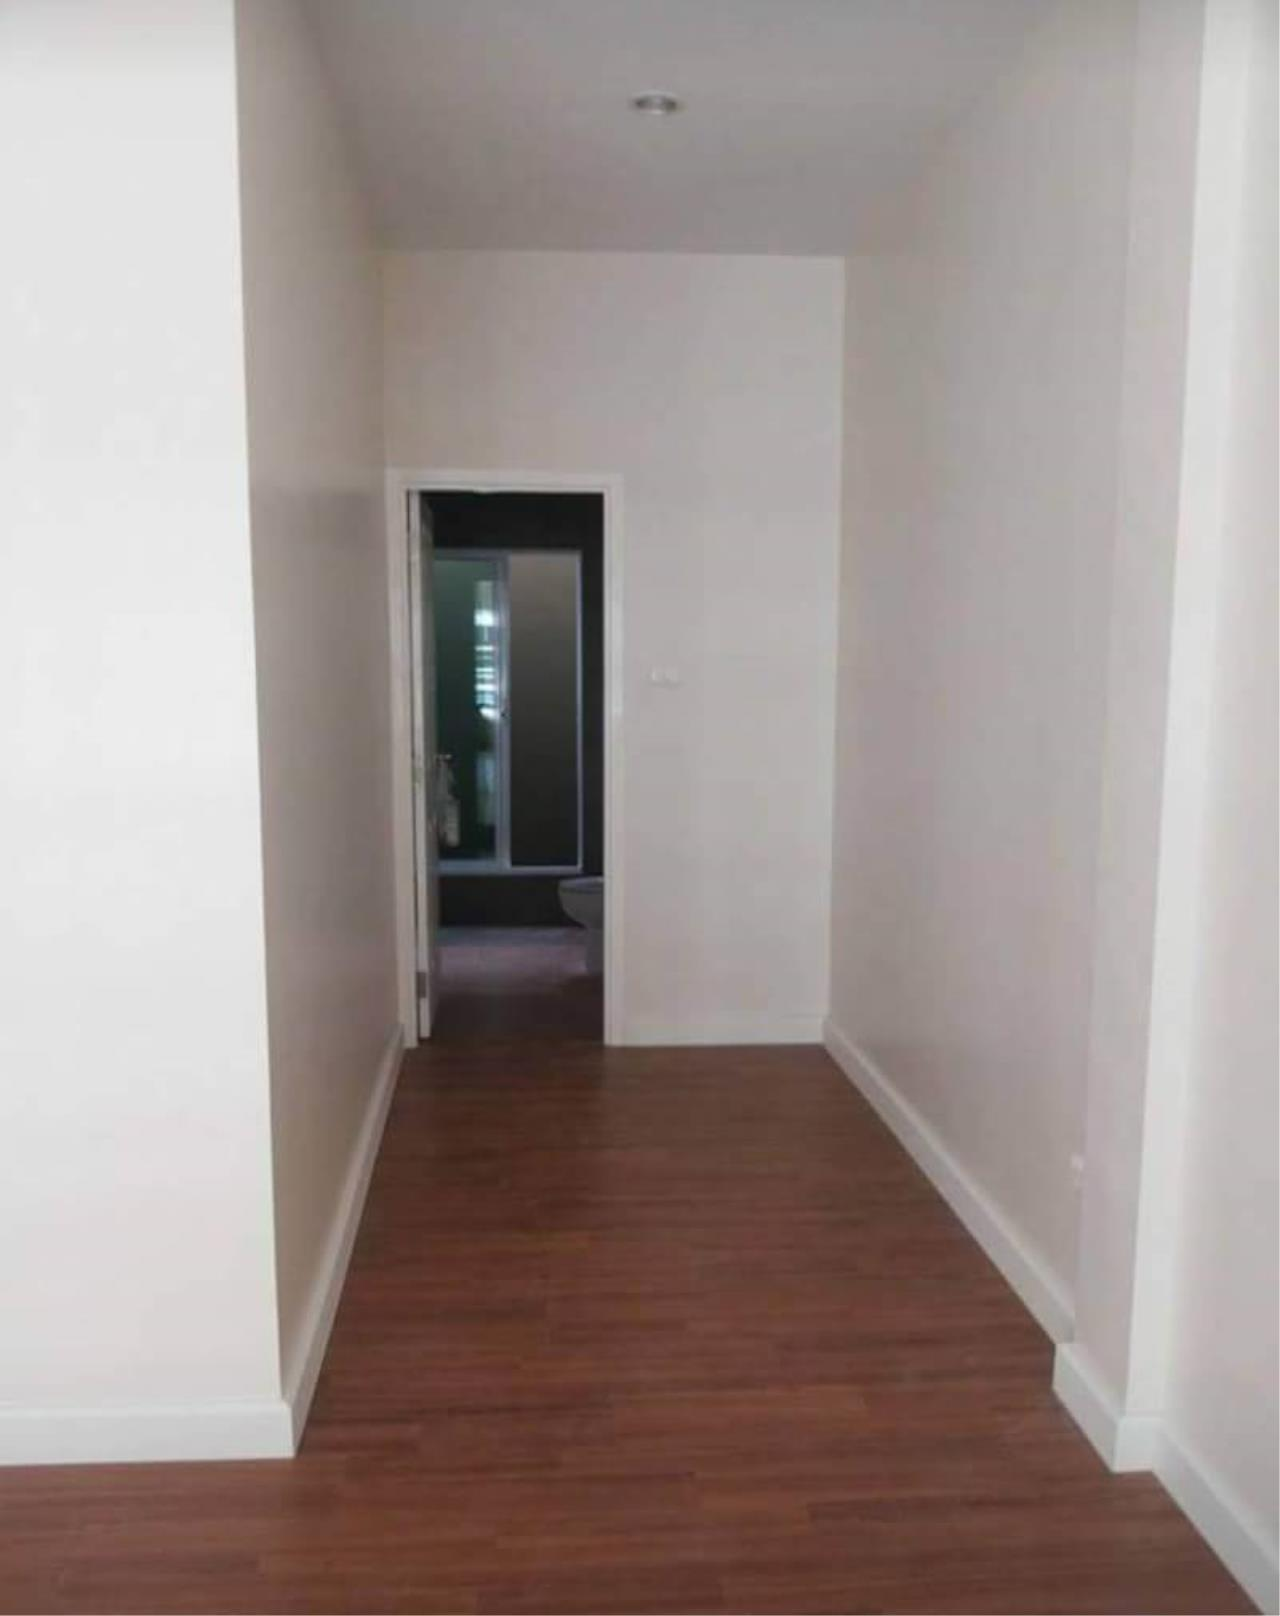 RE/MAX All Star Realty Agency's Townhouse Nalin Avenue 2 (Ramkamhaeng) for sale 2